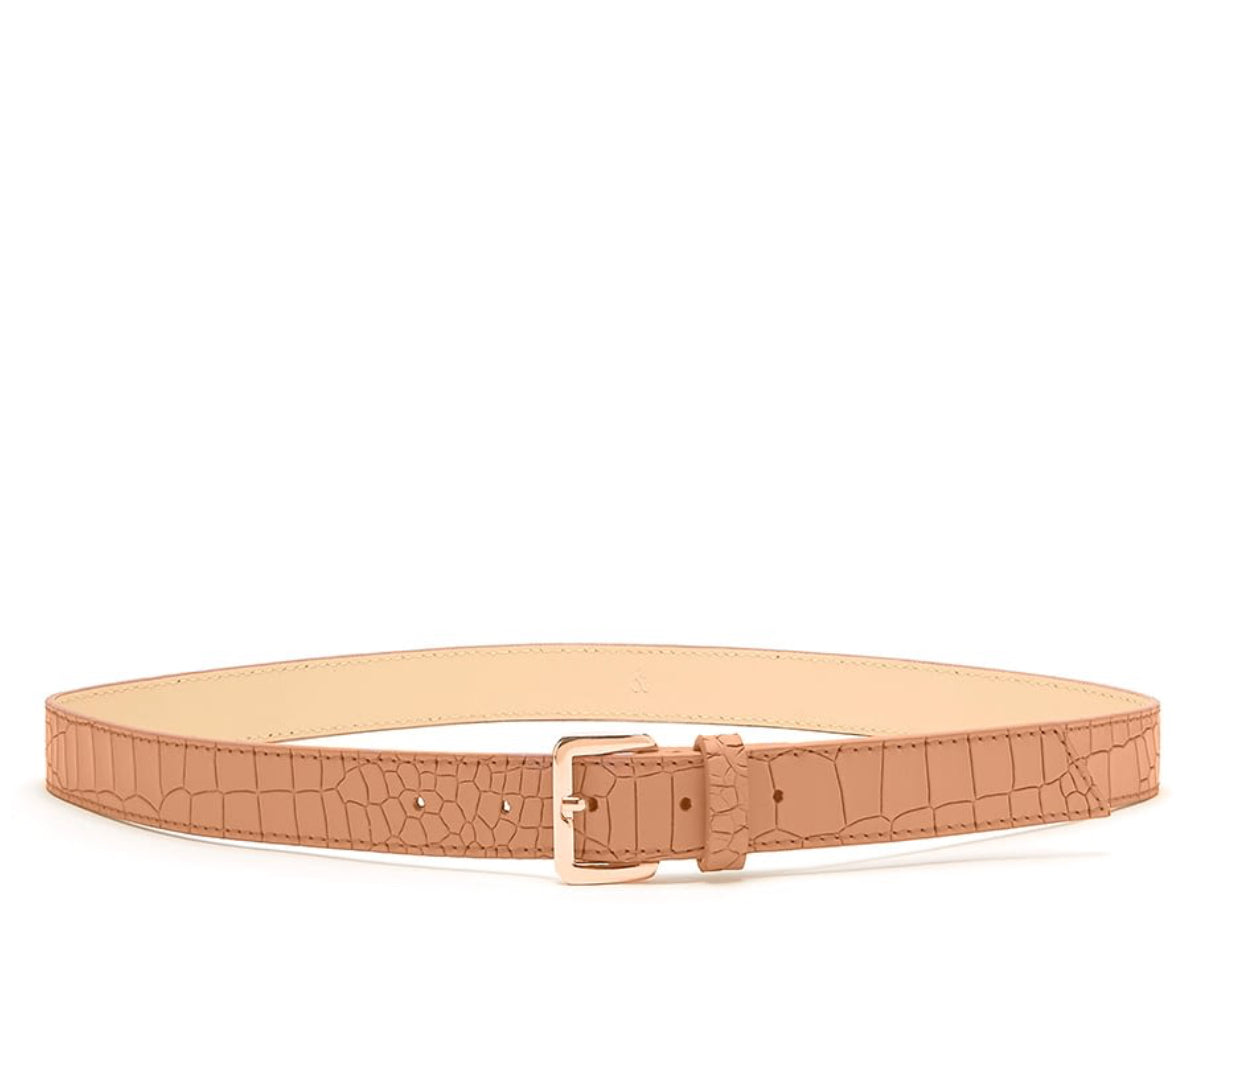 Bell & Fox Erin Croc Embossed Leather Belt - available in black, camel and pewter